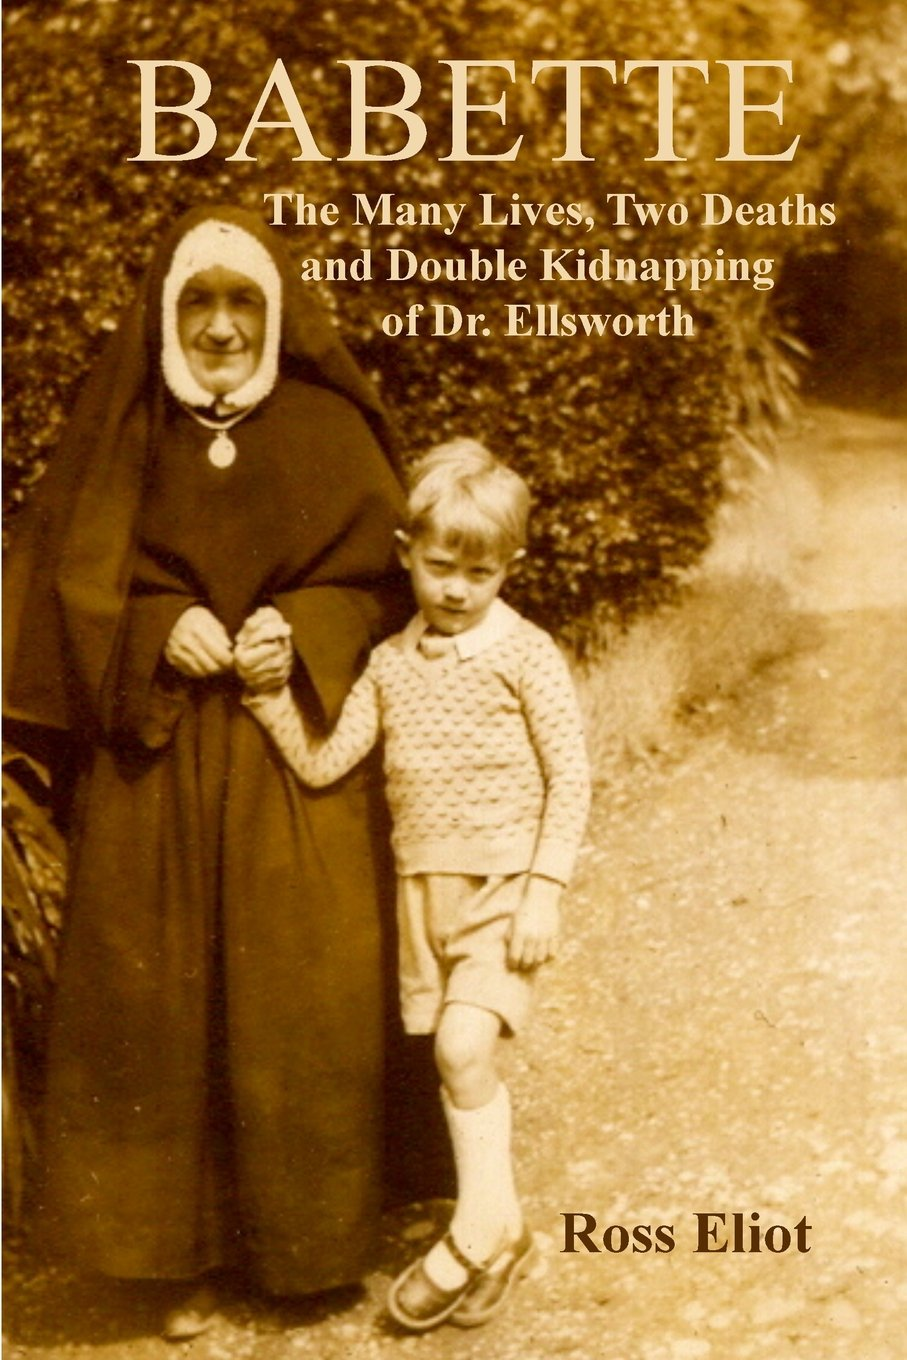 Babette: Many Lives, Two Deaths and Double Kidnapping of Dr. Ellsworth by Ross Eliot